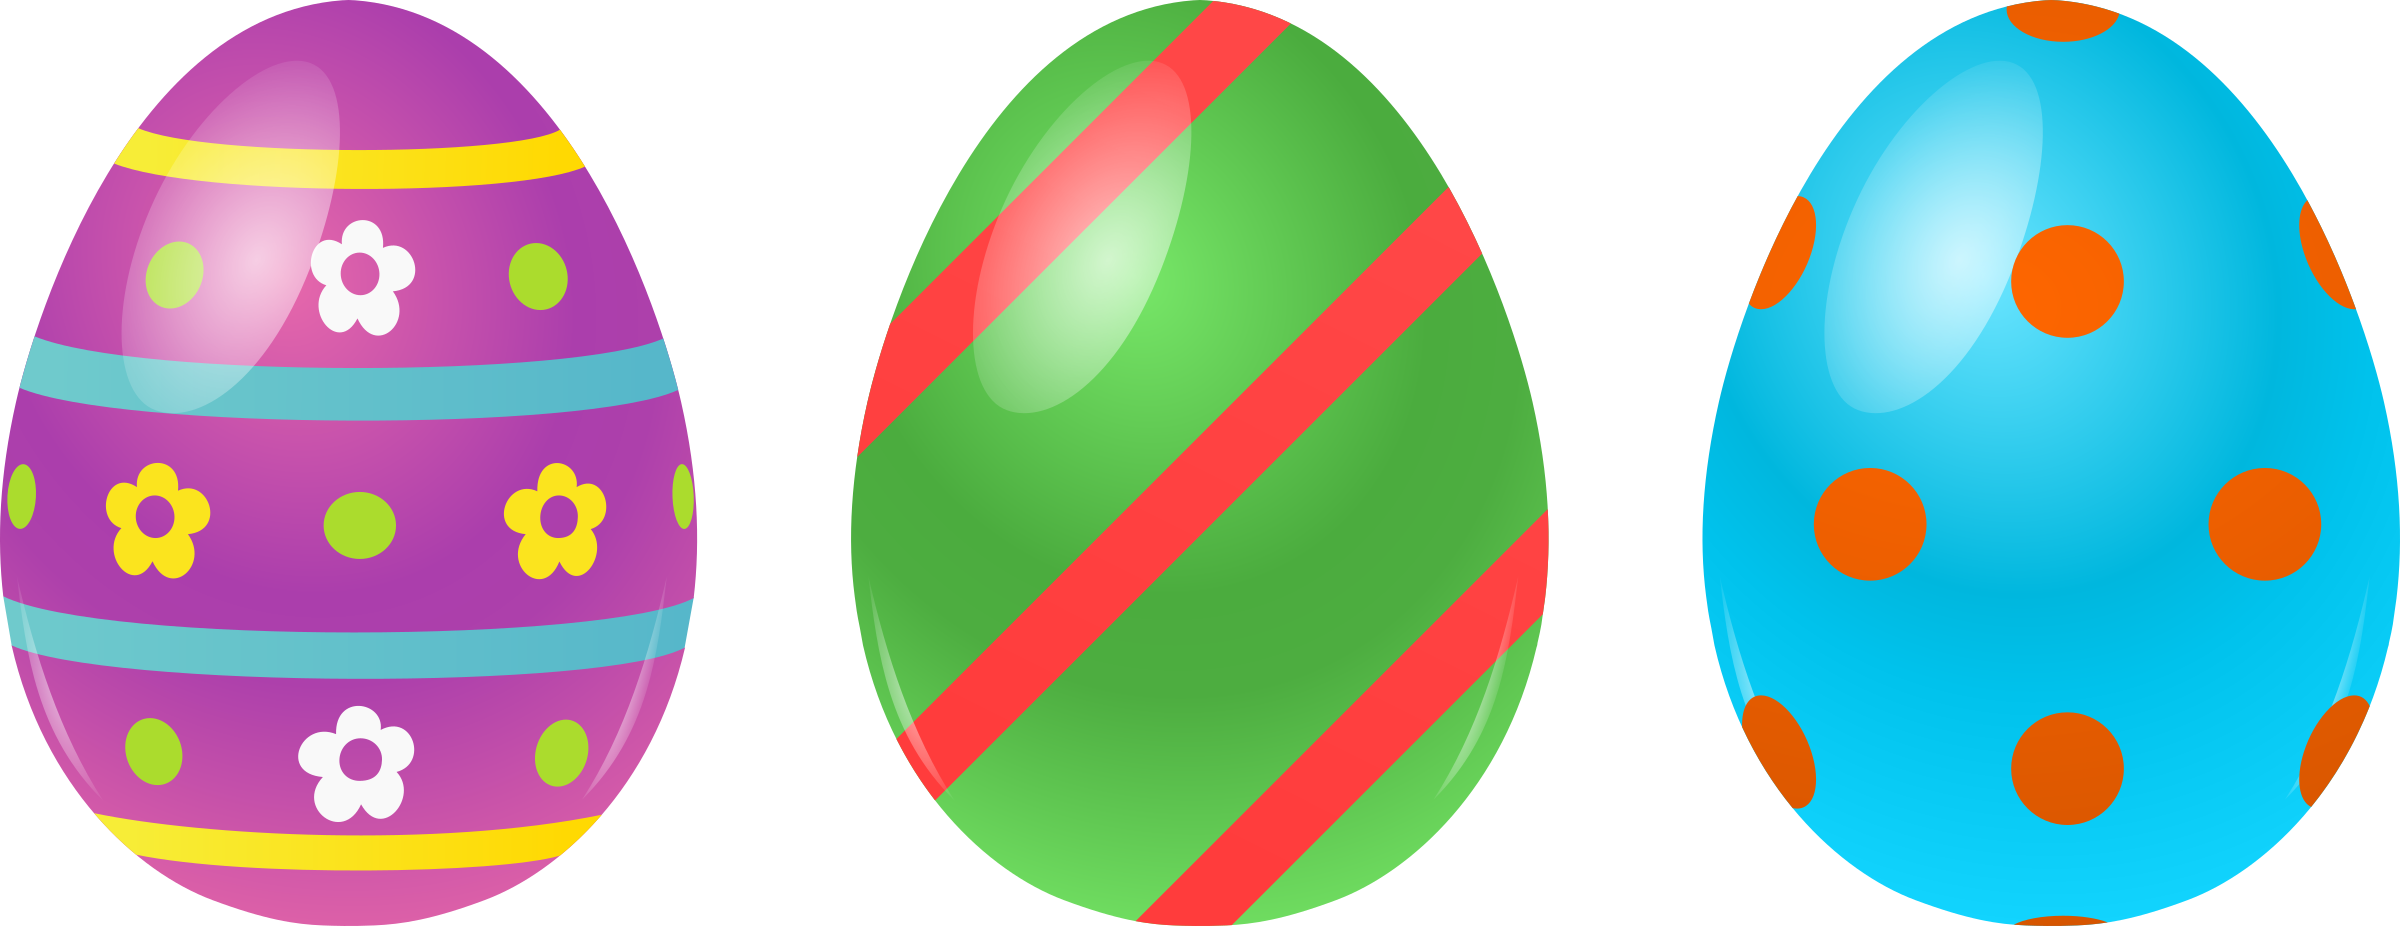 3 Easter Eggs by @cyberscooty, 3 differents decorated eggs , on @openclipart   Easter egg cartoon, Easter eggs, Happy easter card